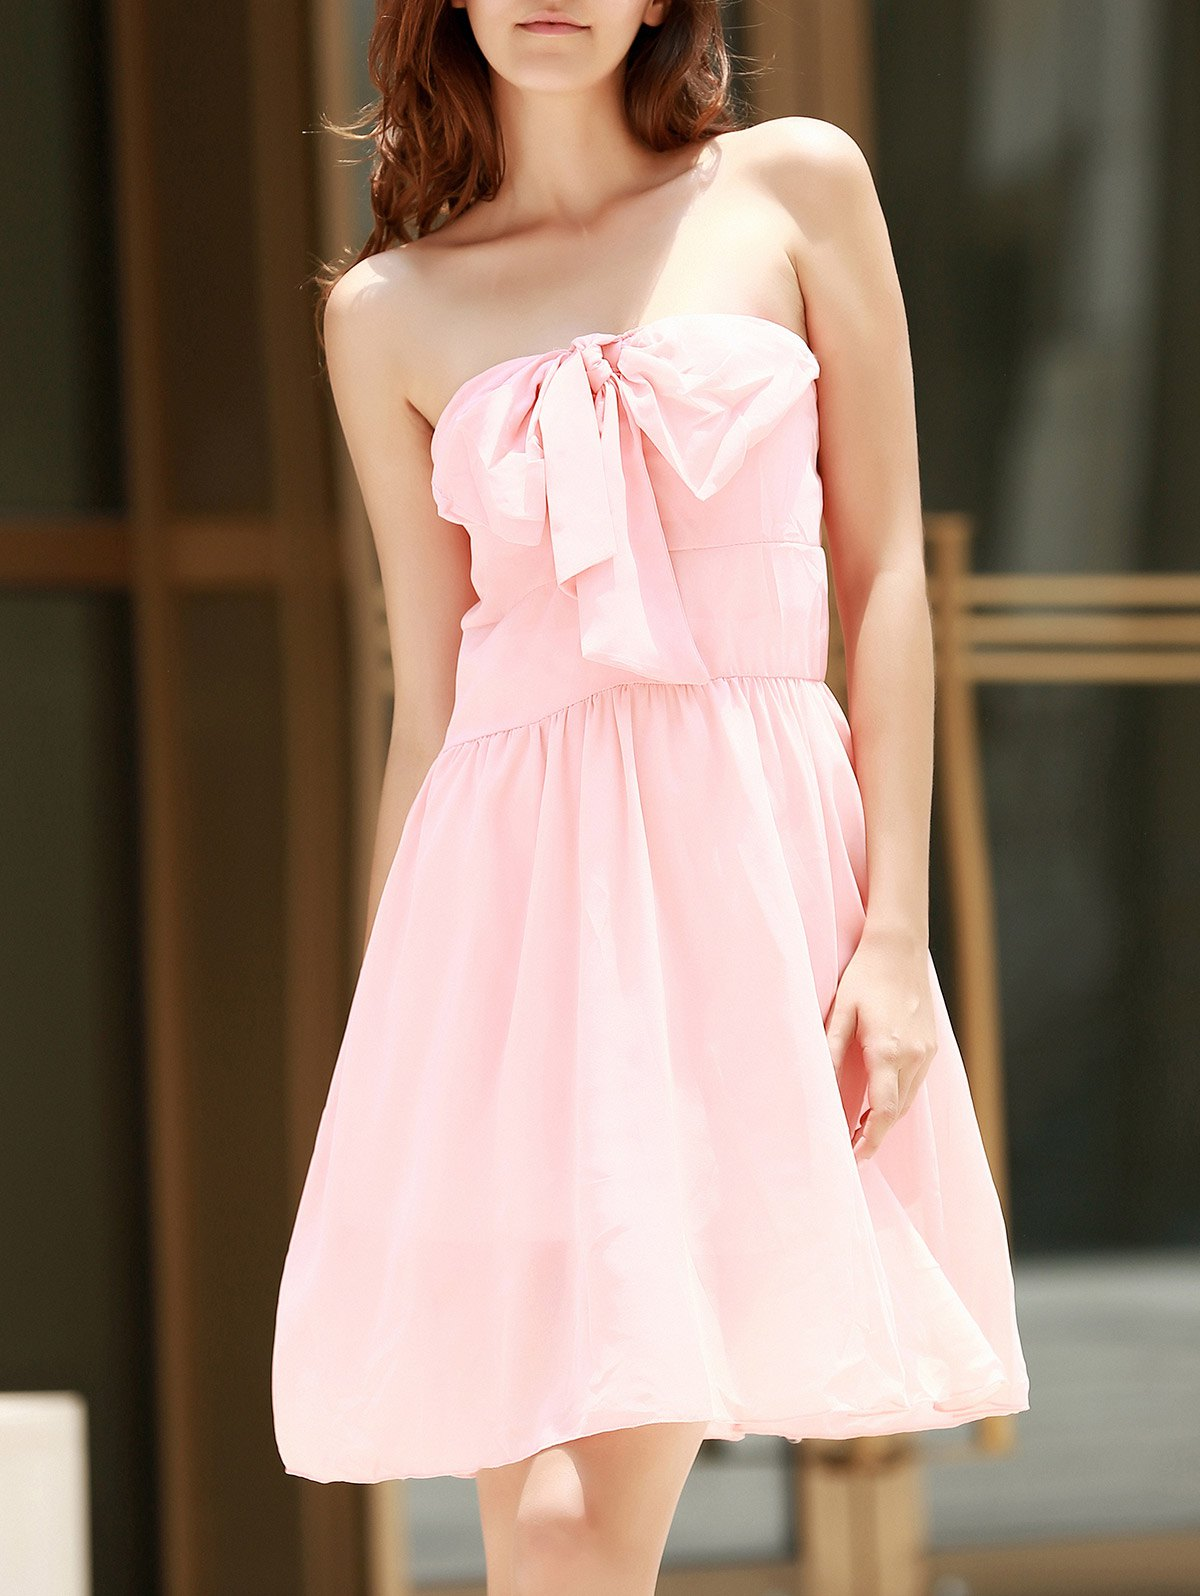 Sleeveless Strapless Bowknot Embellished Dress - PINK XL